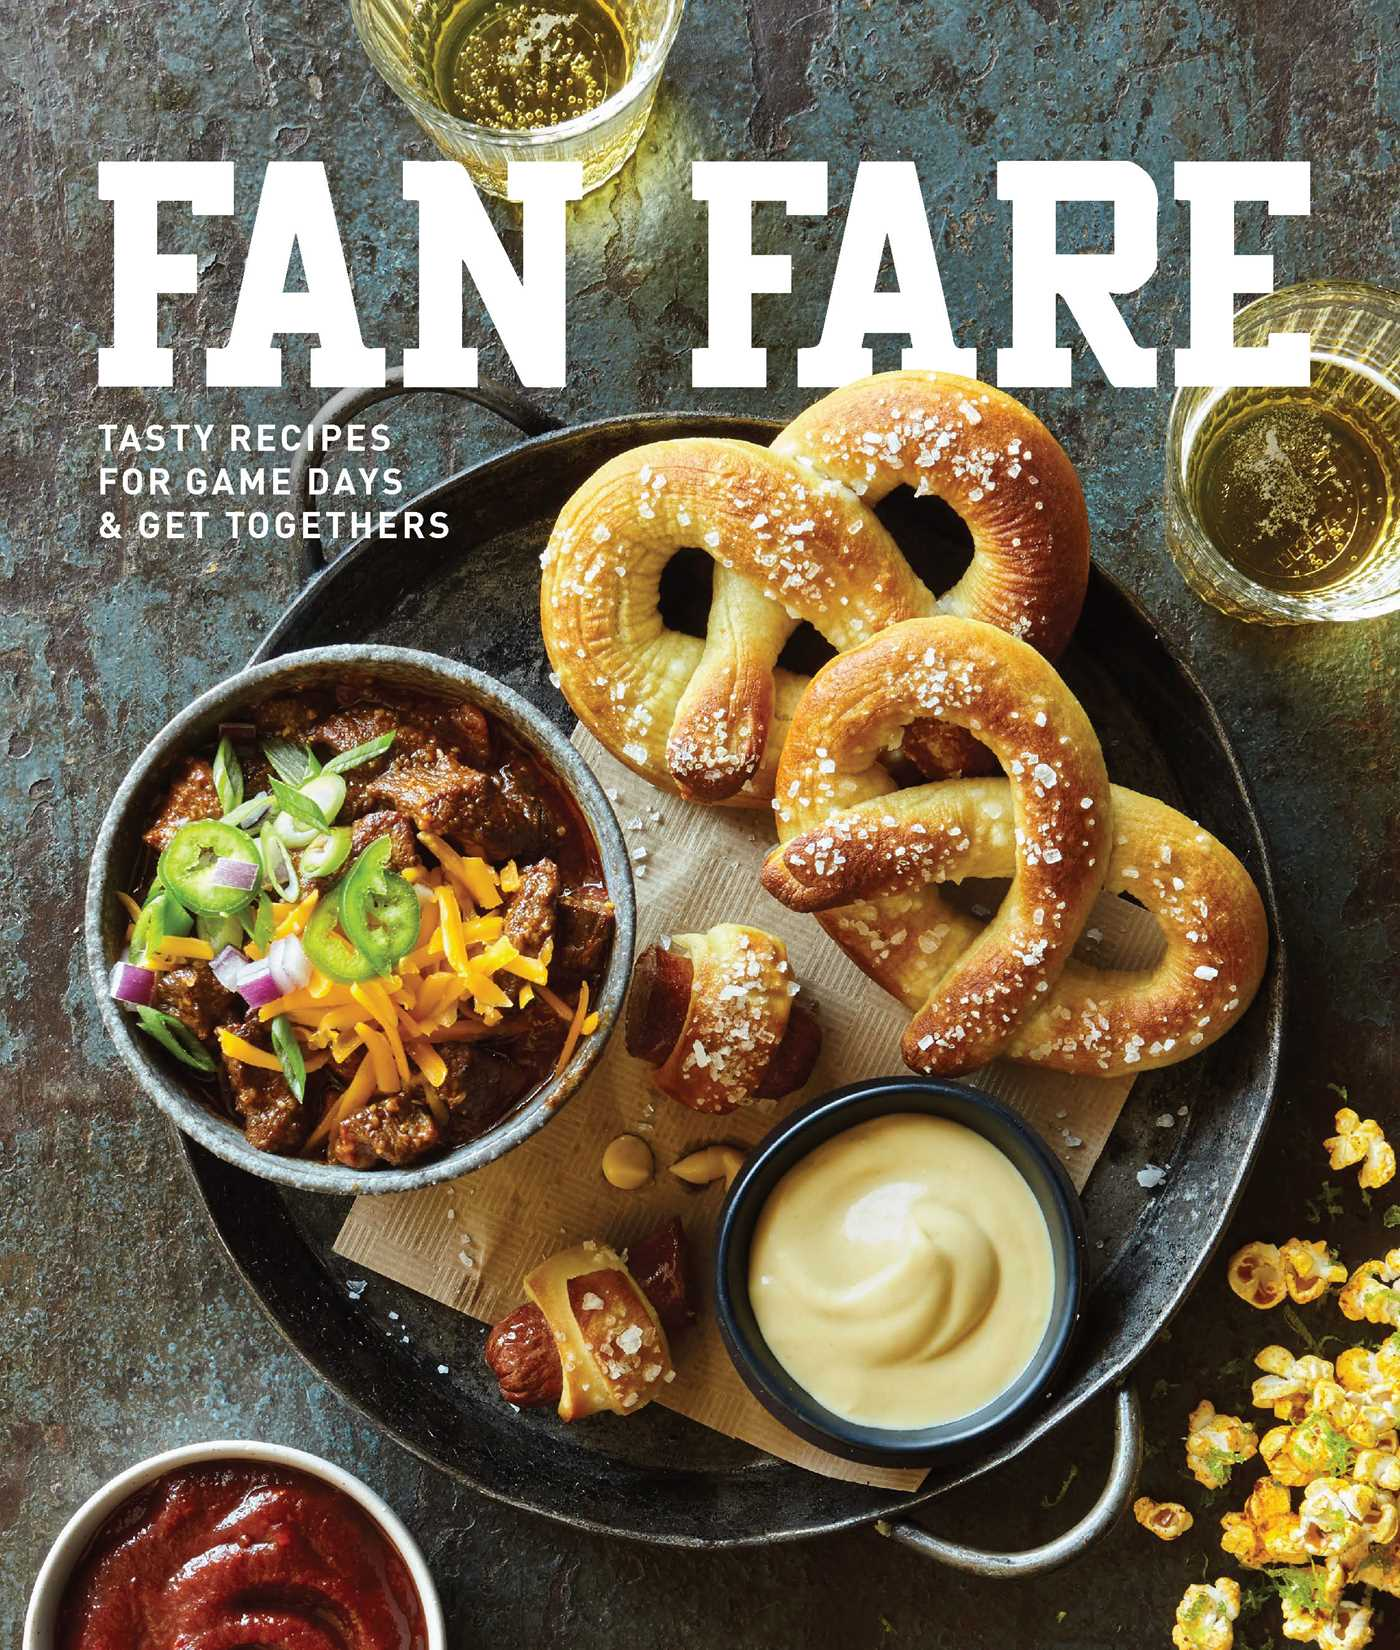 Fan fare 9781681882567 hr